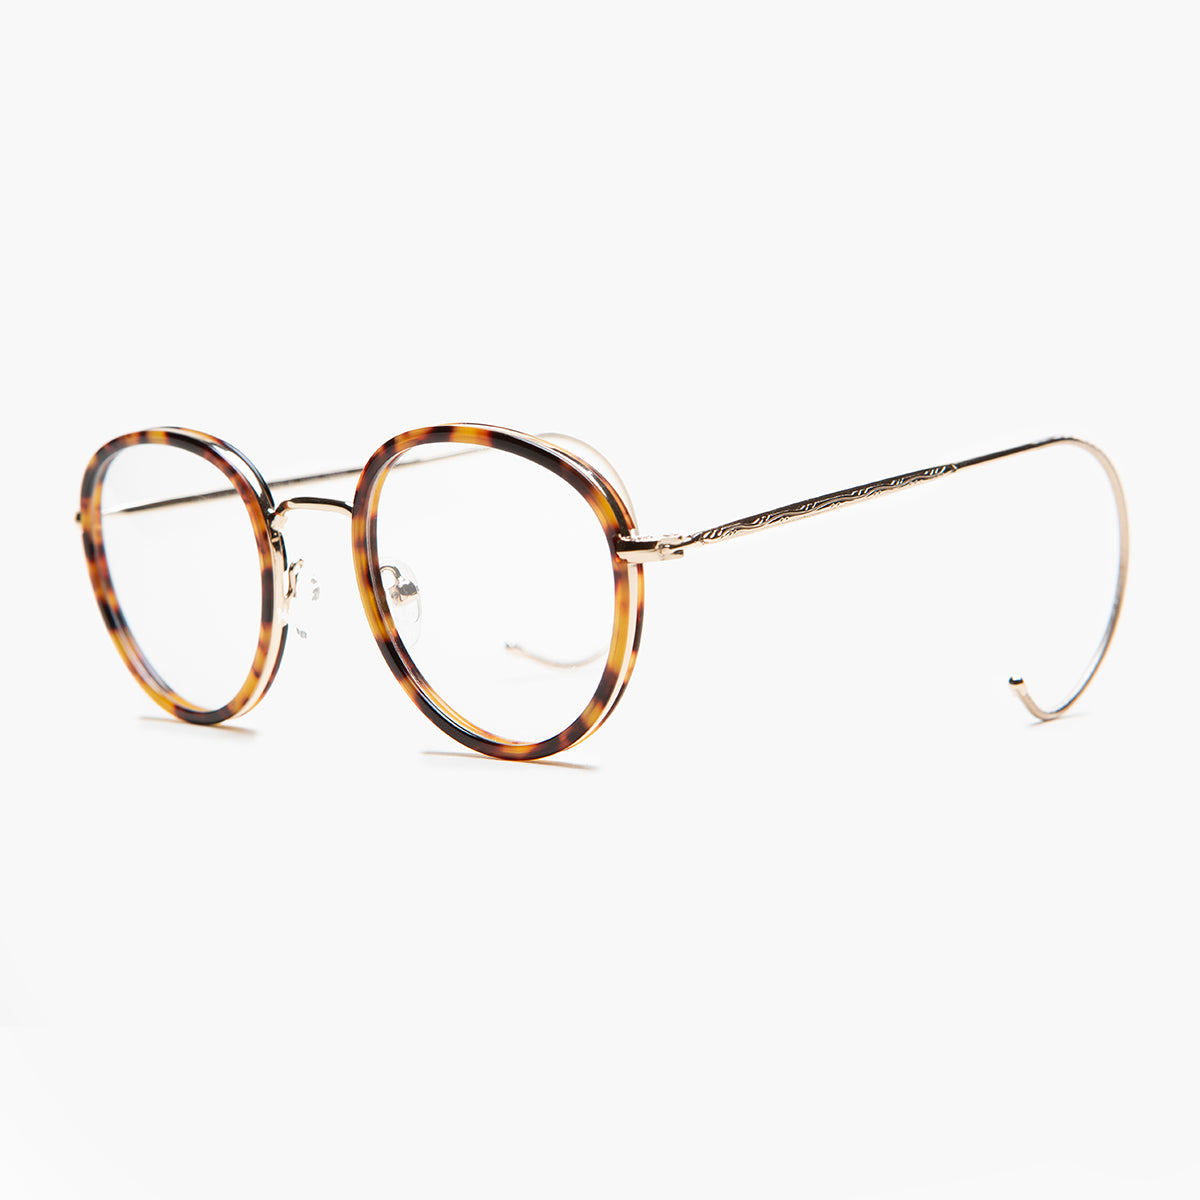 Preppy Round Glasses with Cable Temples